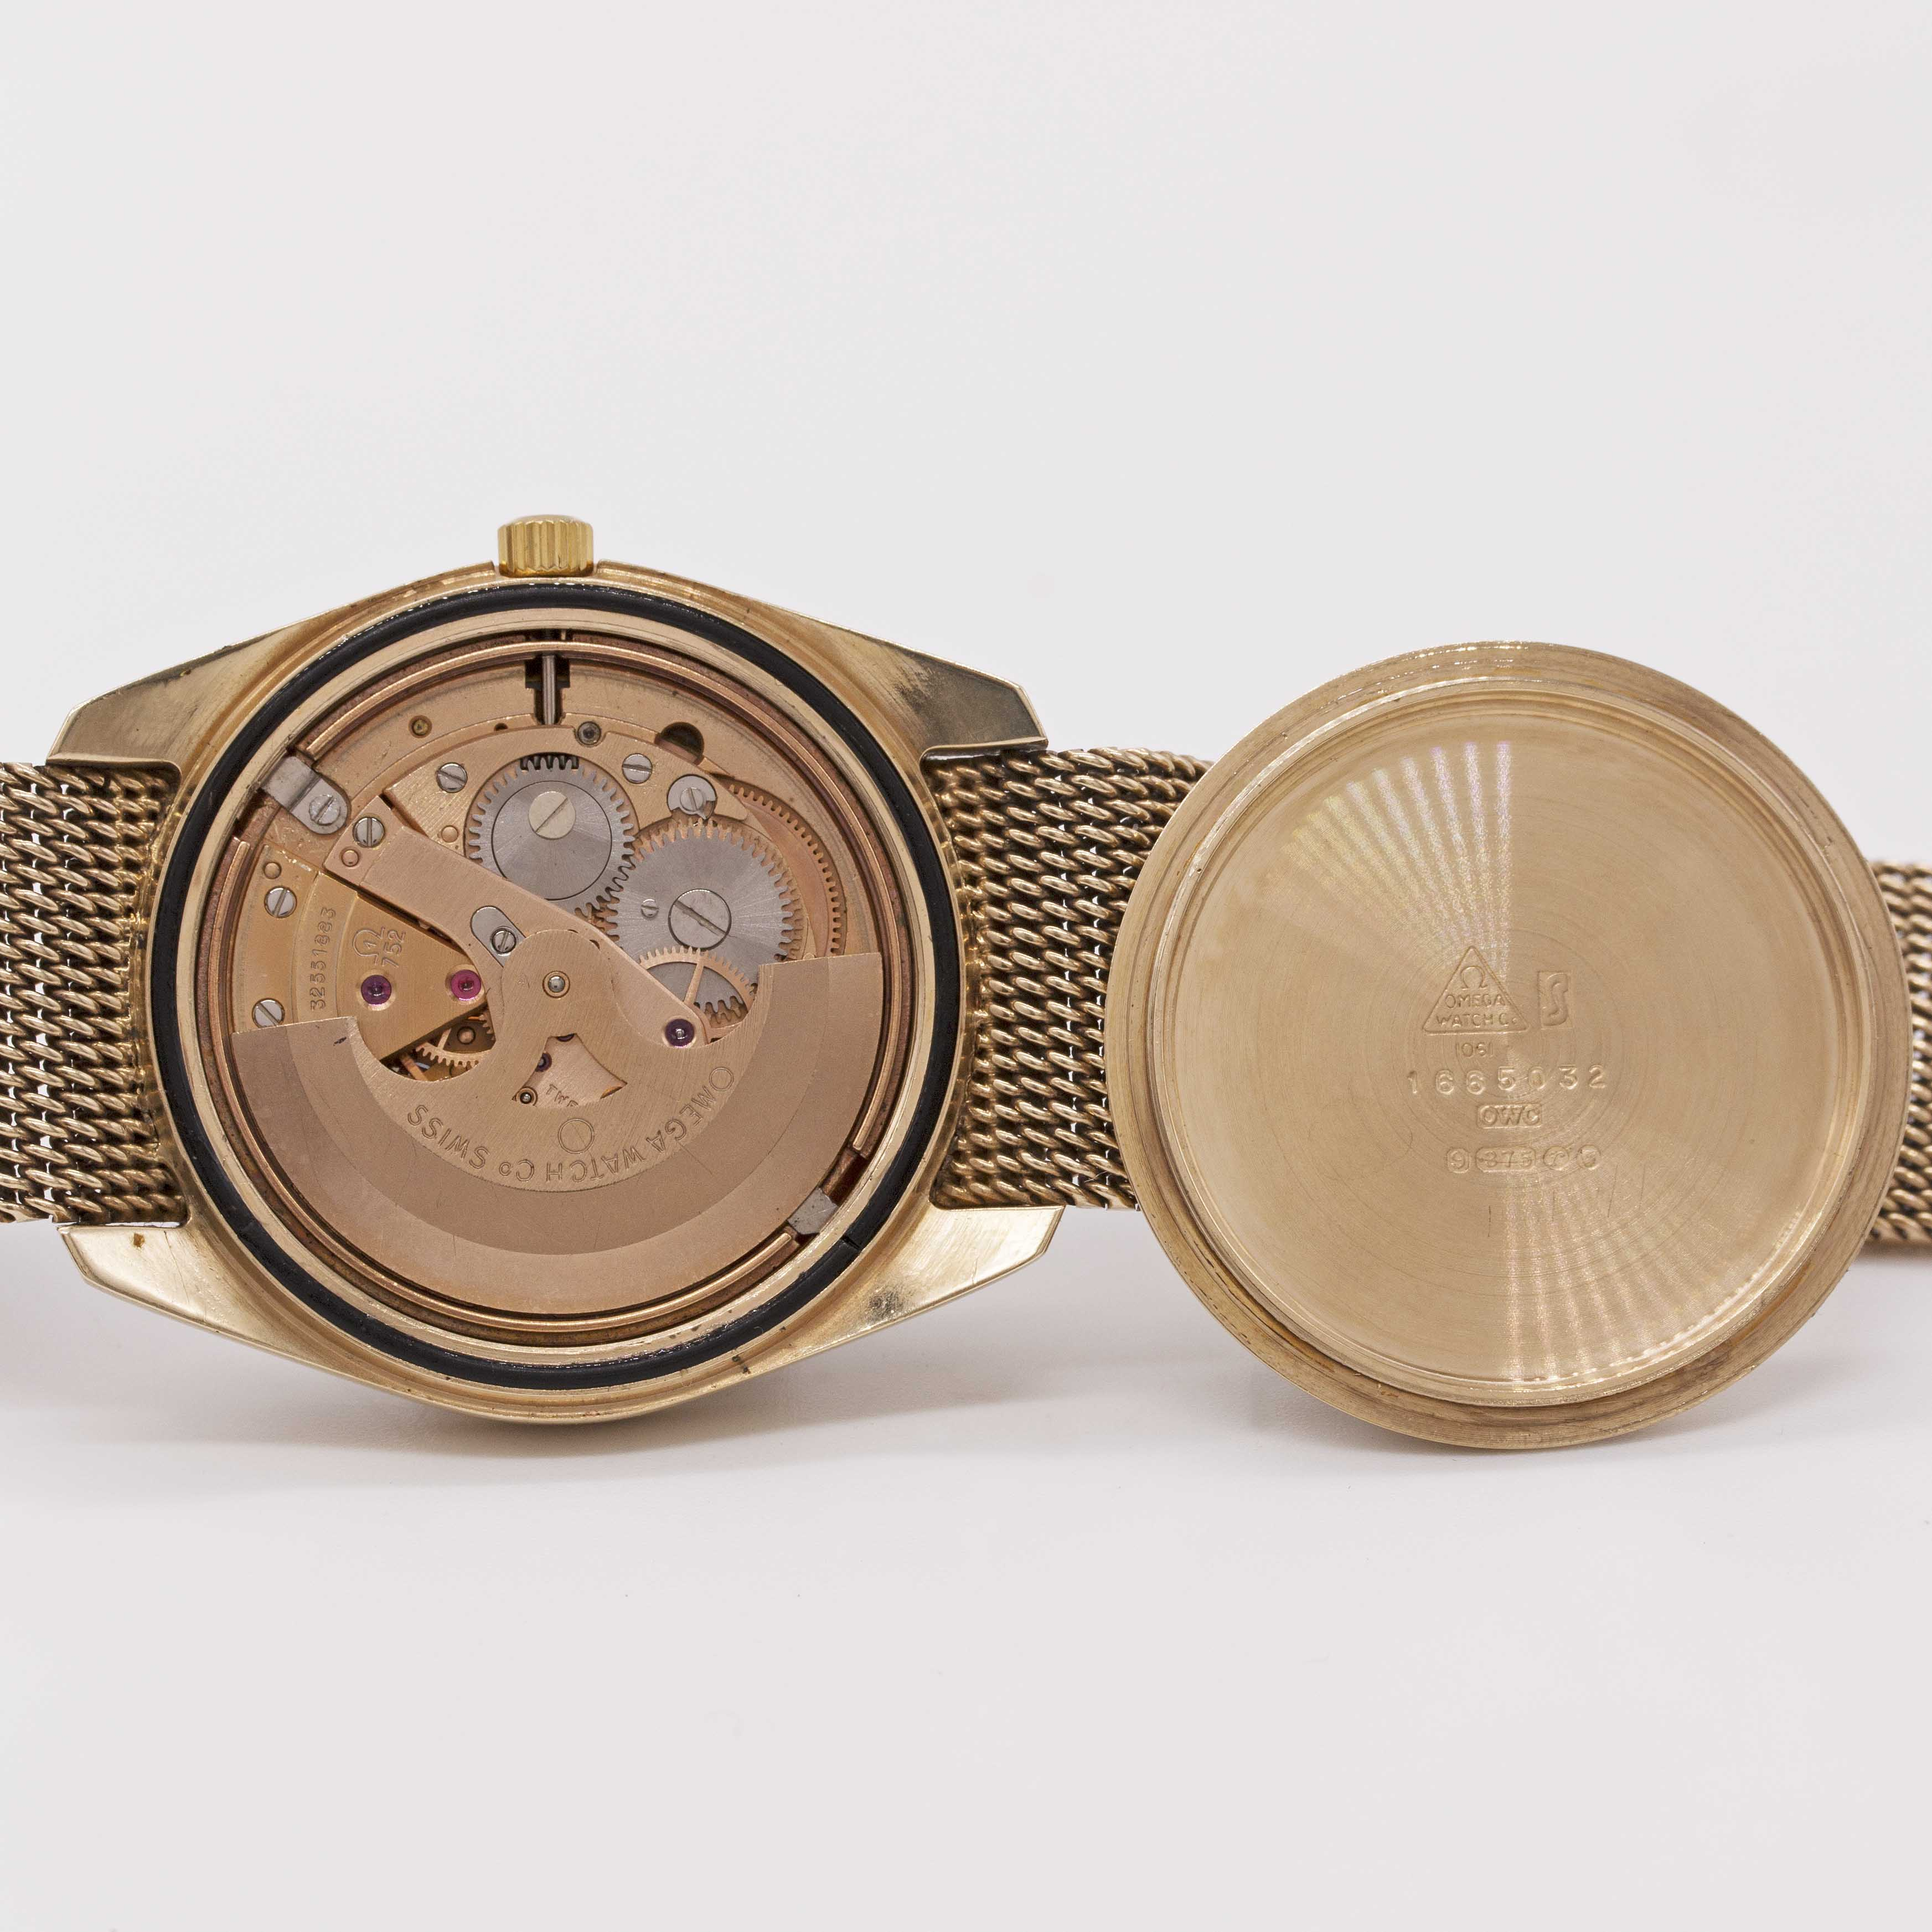 Lot 21 - A GENTLEMAN'S 9CT SOLID GOLD OMEGA AUTOMATIC BRACELET WATCH CIRCA 1973 Movement:24J, automatic,